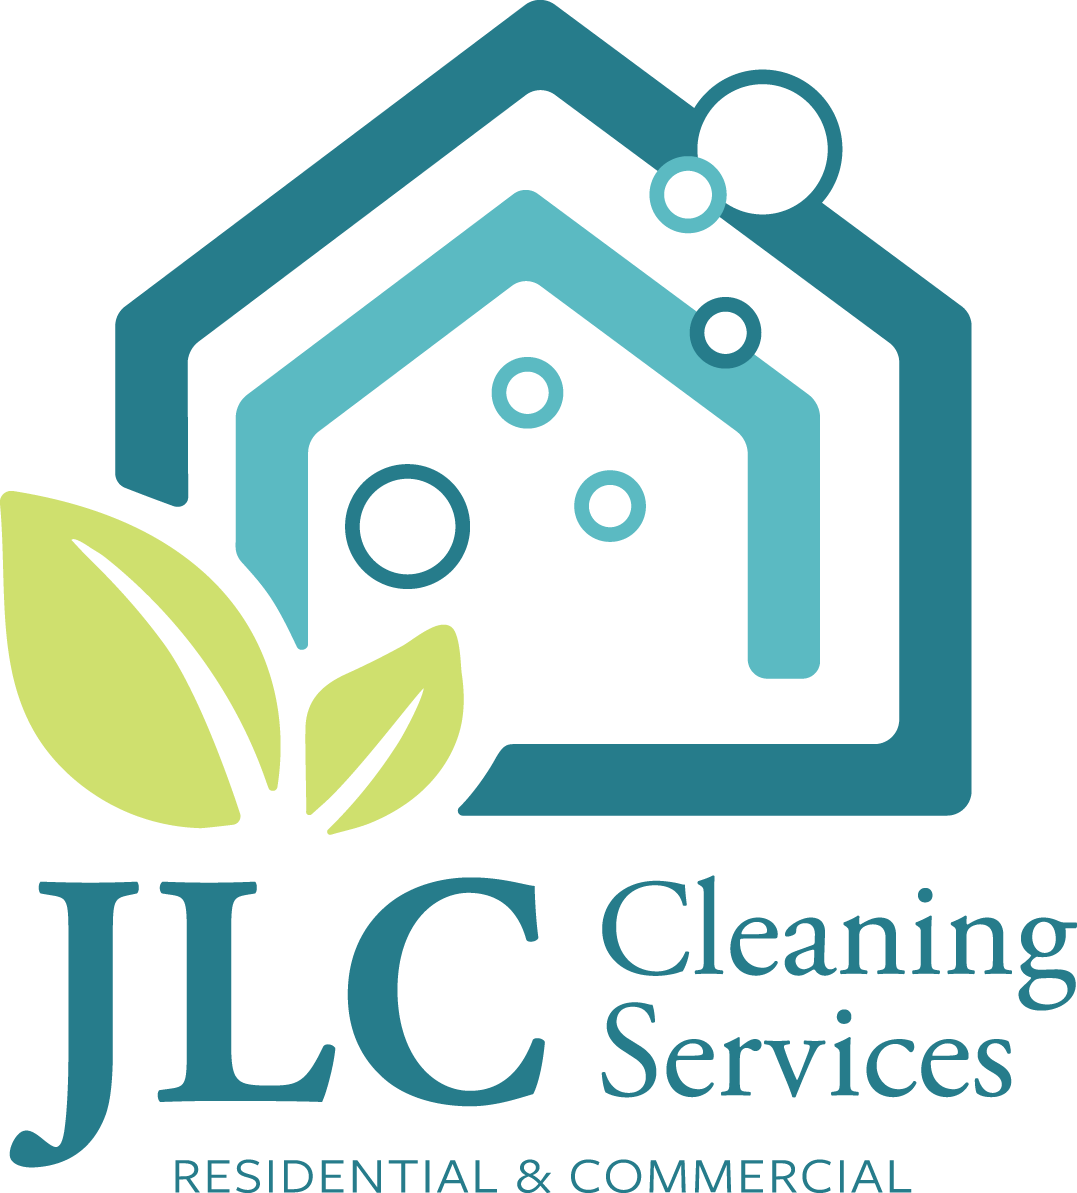 JLC Cleaning Services